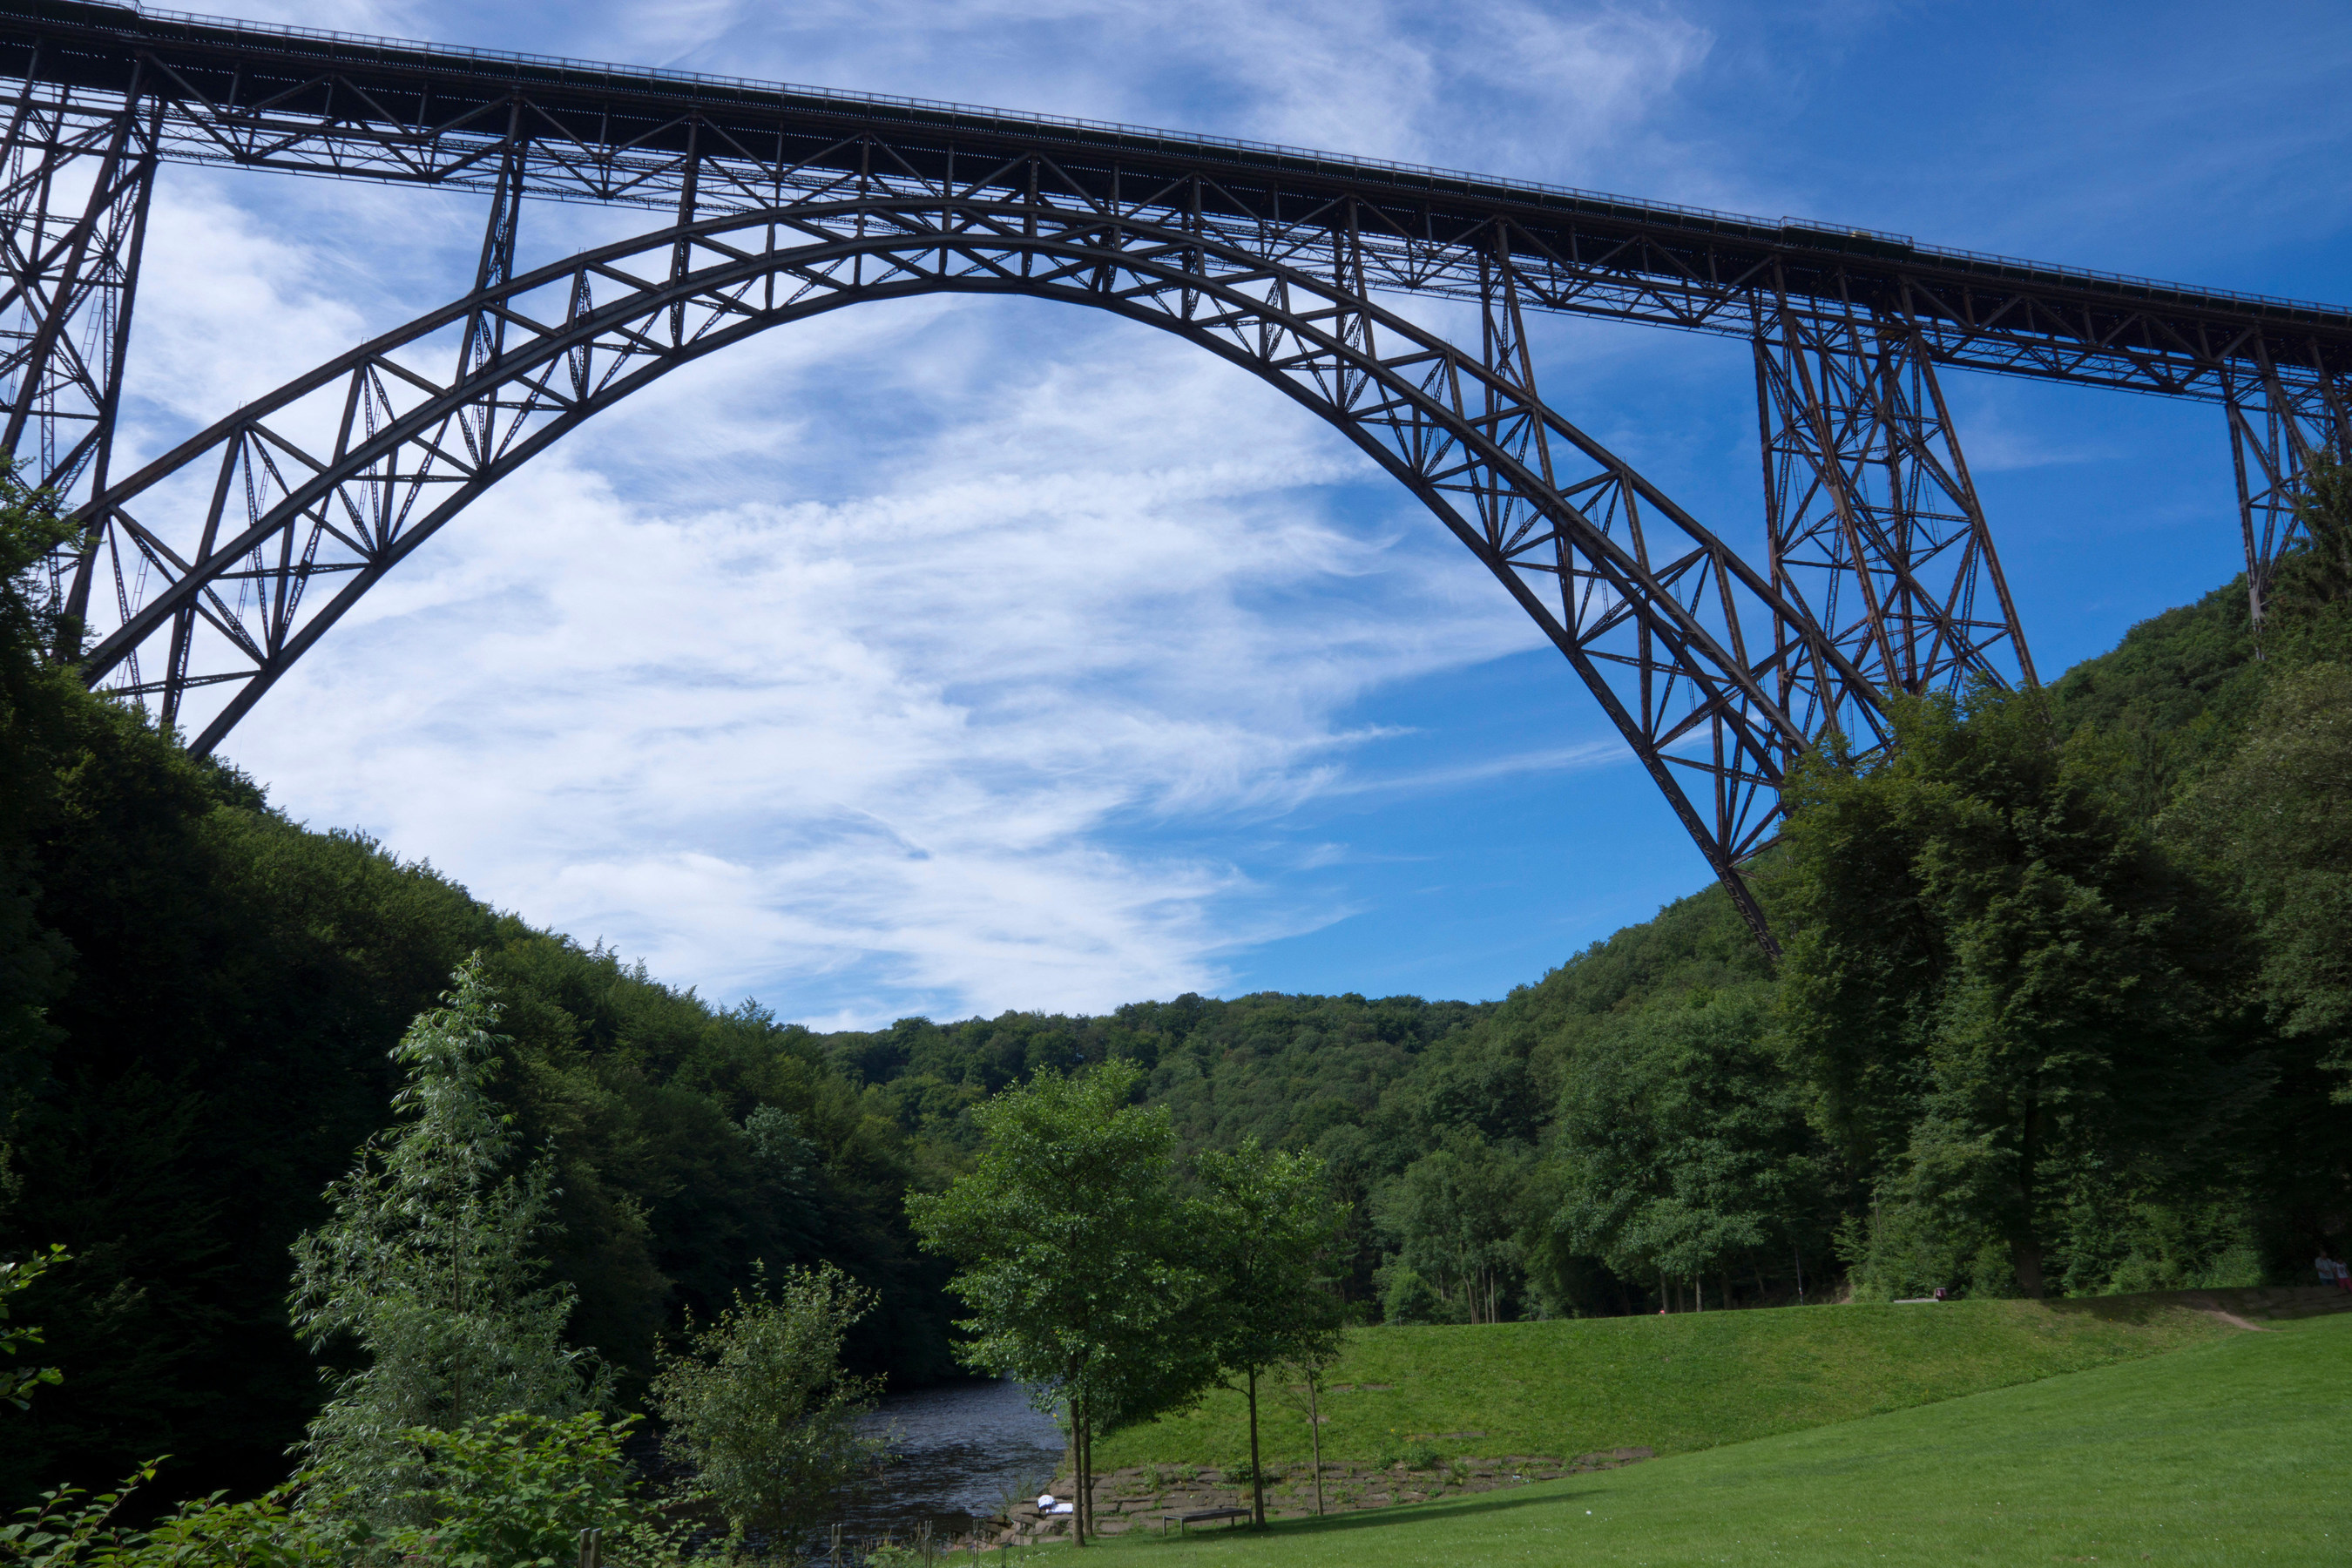 The Mungsten Bridge, highest steel rail bridge in Germany, was renovated using MM1018, now available in the US exclusively from Stronghold Coating Systems, Franklin, OH